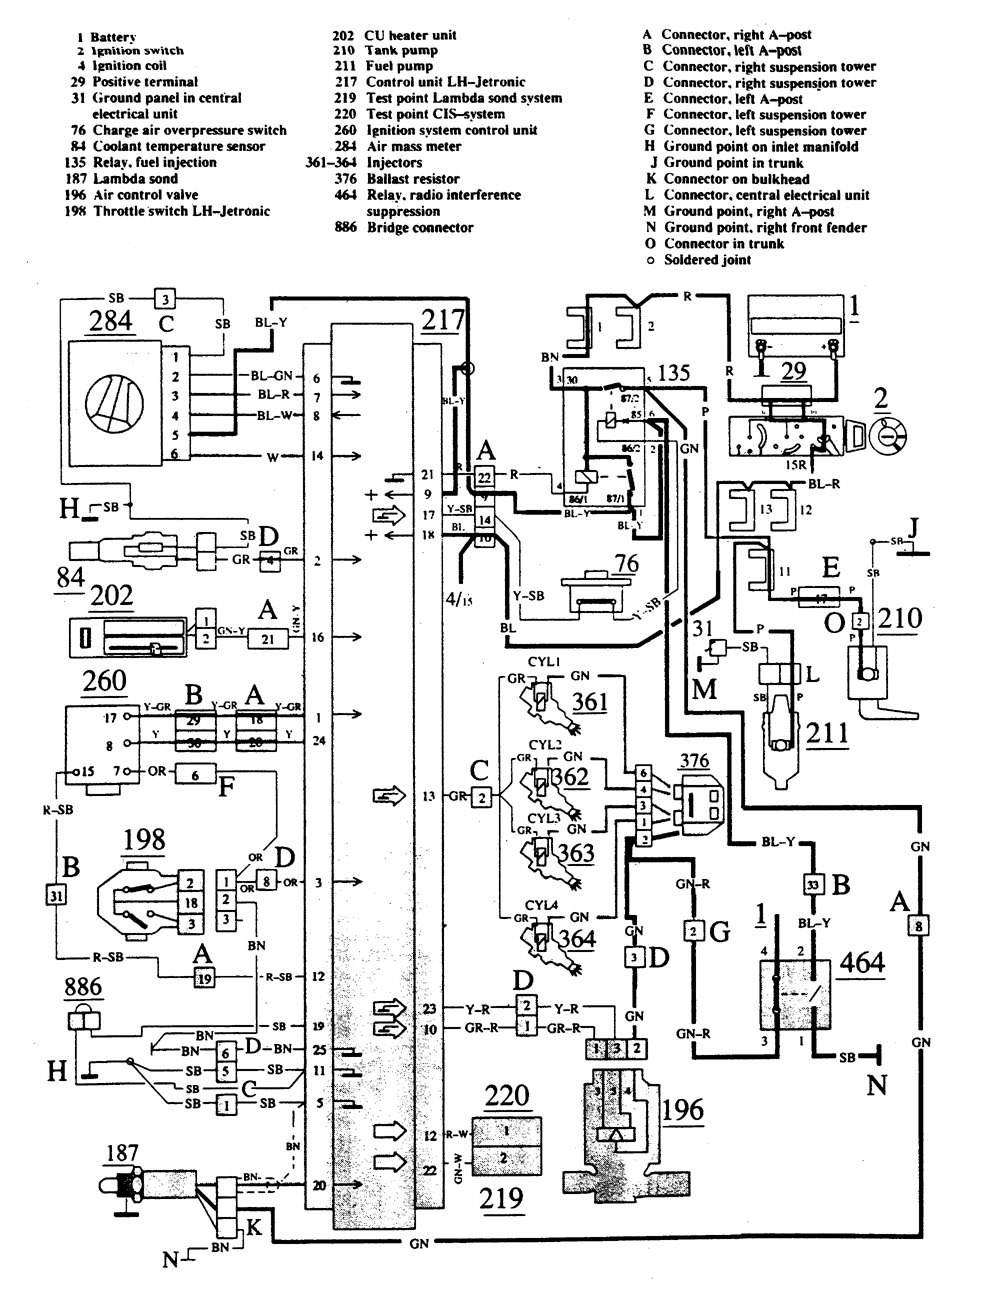 Volvo Electrical Diagrams 1987 740 Turbo. Volvo. Auto